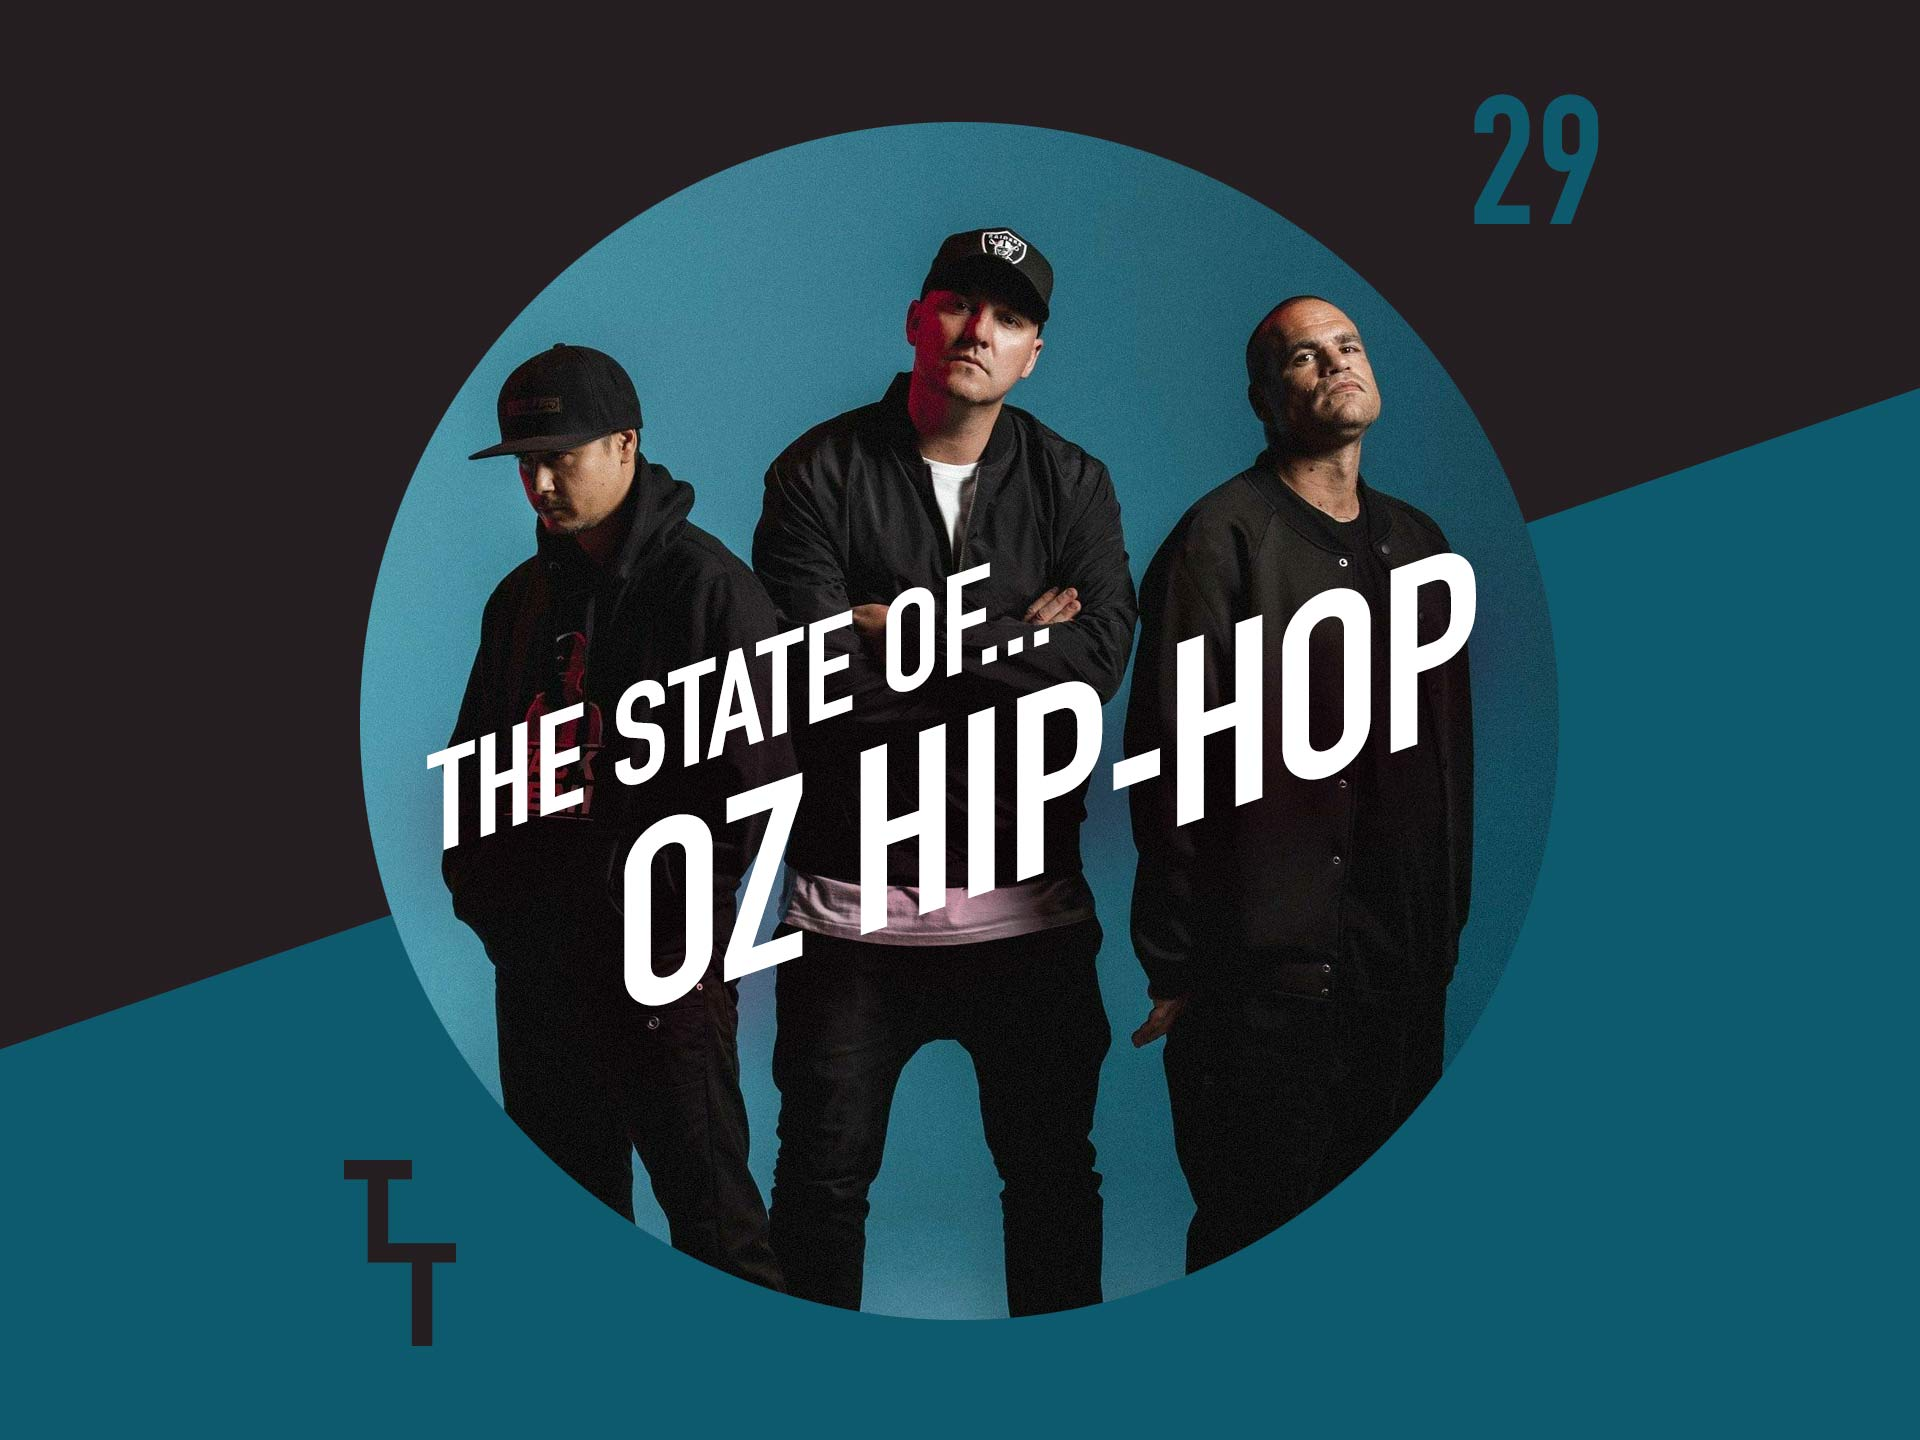 take-my-tone-ep-29-the-state-of-aussie-hip-hop-downsyde.jpg